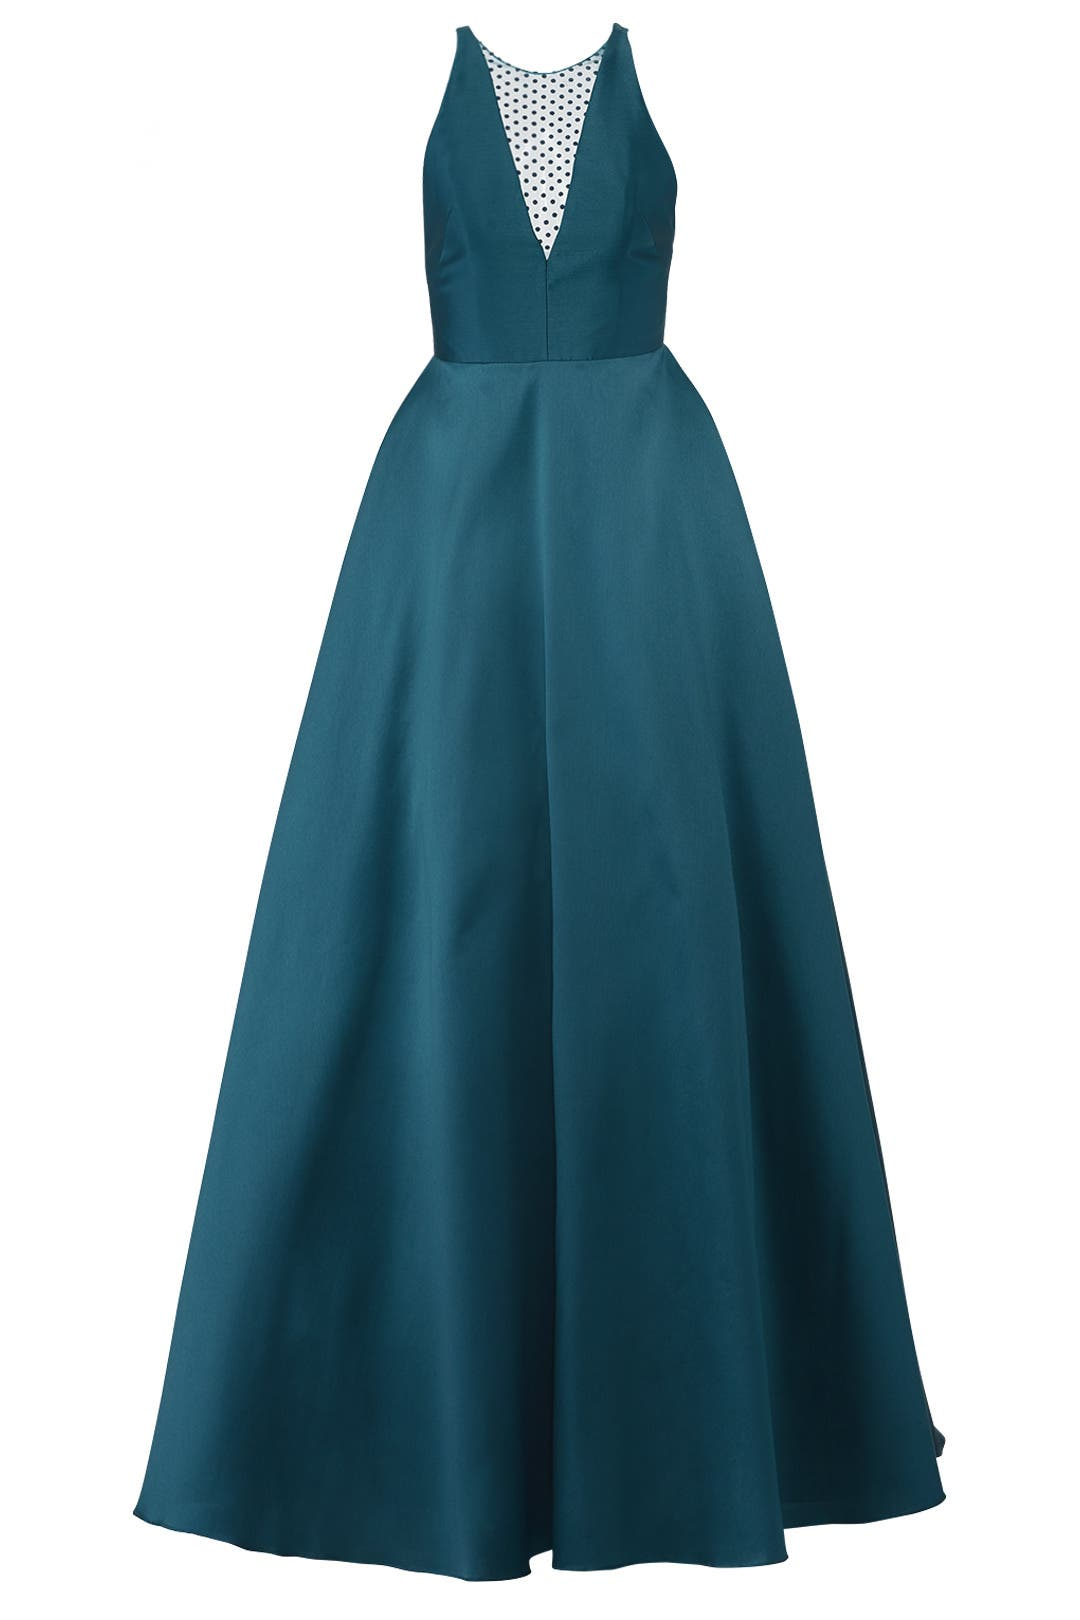 Teal Mesh Ball Gown by ML Monique Lhuillier for $105 | Rent the Runway